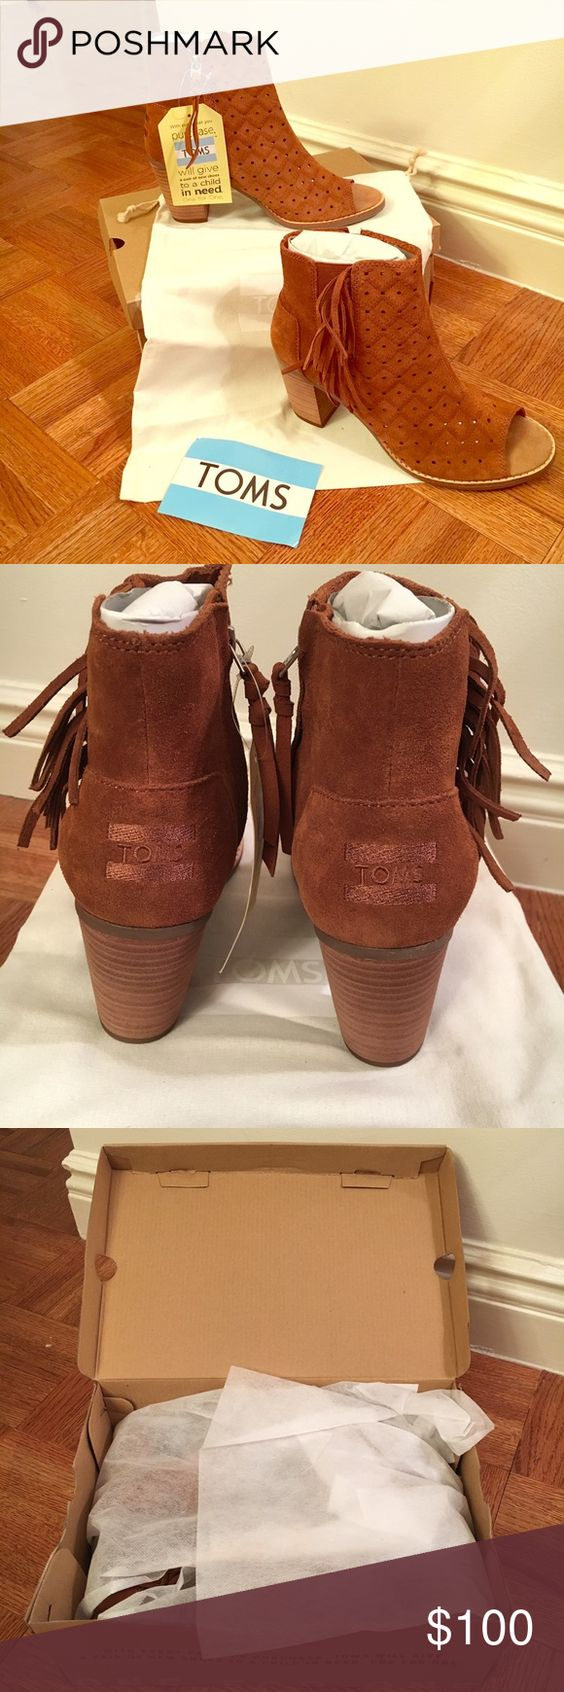 TOMS Suede Perforated Bootie with Fringe Brand new! Never worn! TOMS Peep Toe Perforated Bootie with Fringe Detail on side. Awesome cinnamon color. Perfect for fall! On trend with boho accents! Shipped in original packaging with TOMS dust bag.  🚭 Comes from a smoke & pet free home! 🚫 No trades, reasonable offers only please 🤗 TOMS Shoes Ankle Boots & Booties